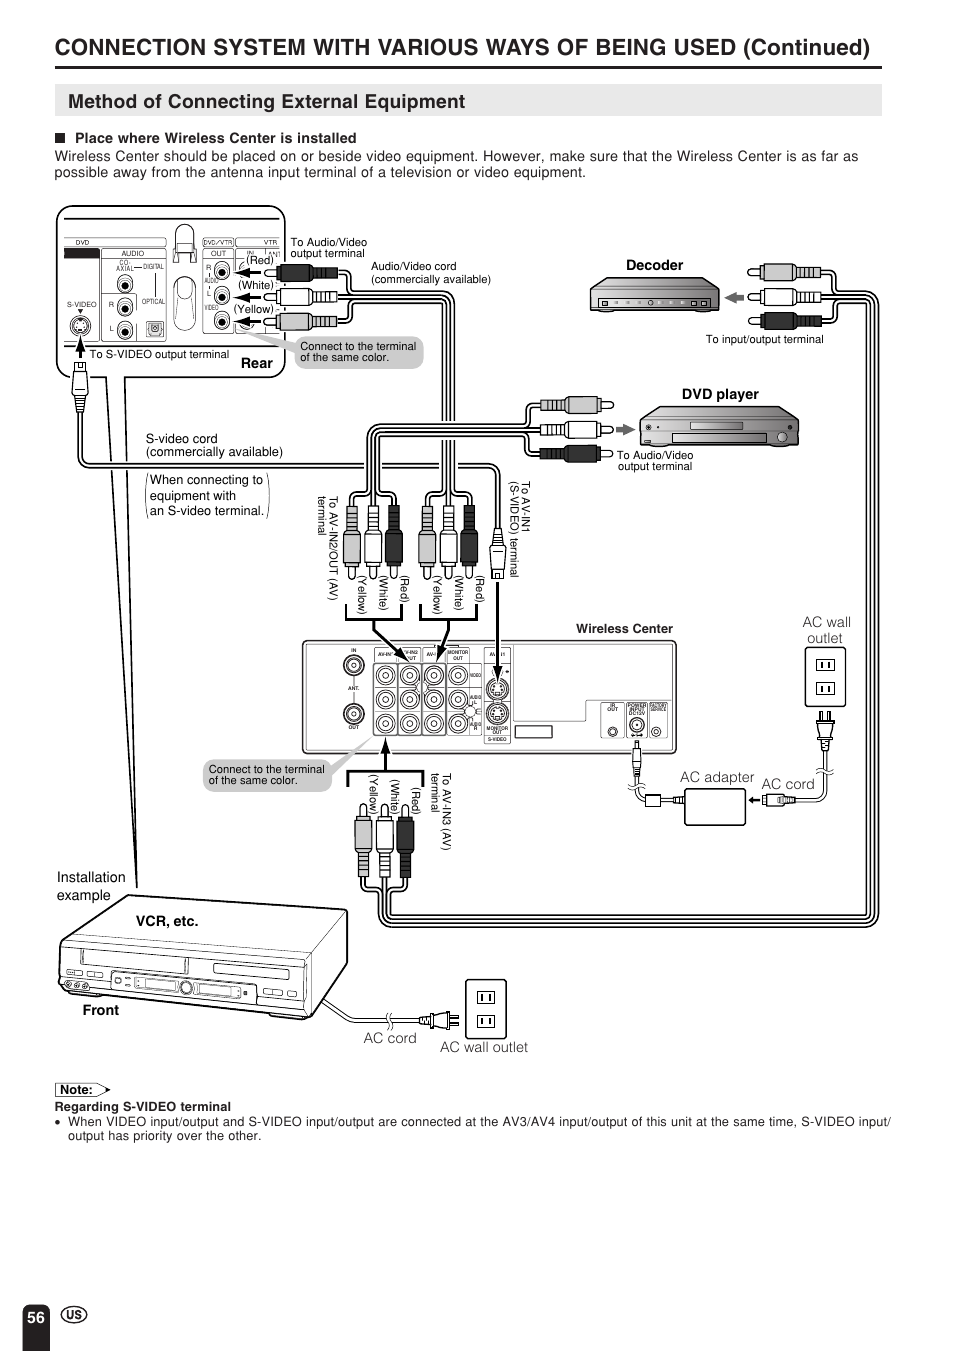 Method of connecting external equipment, Dvd player decoder, Rear front  vcr, etc.